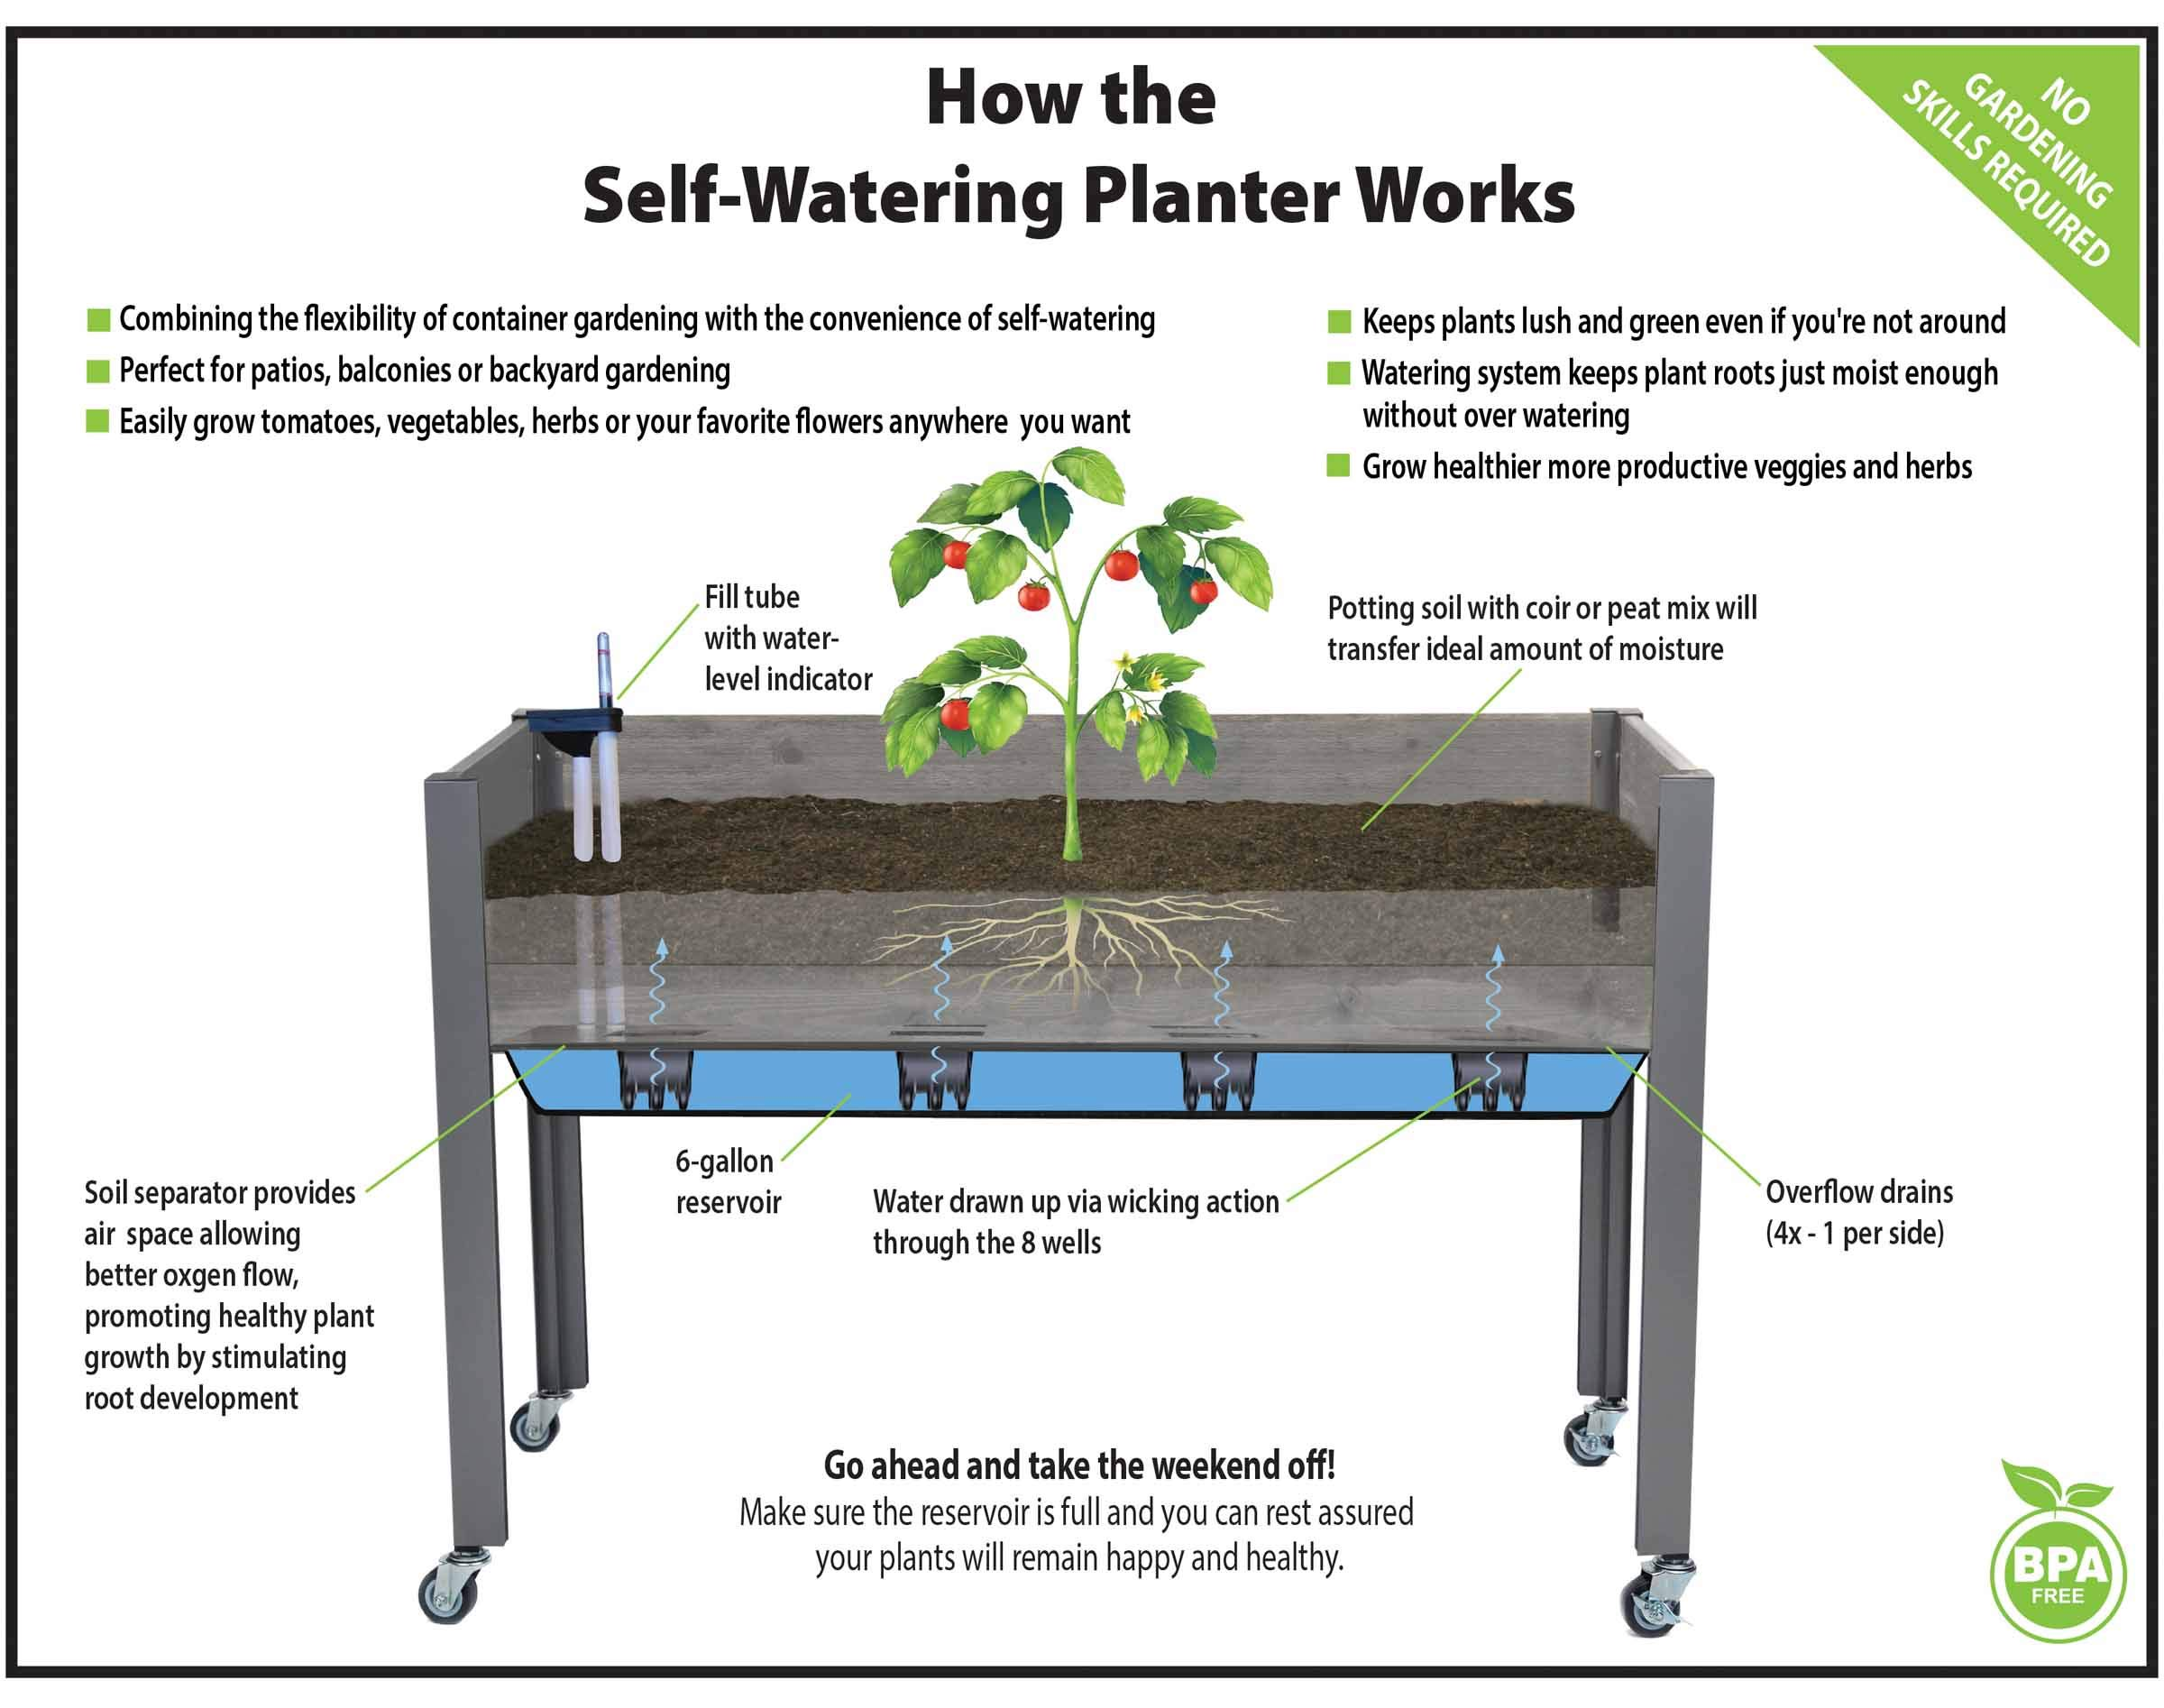 CedarCraft Self-Watering Elevated Spruce Planter (21'' x 47'' x 32''H) - The Flexibility of Container Gardening + The Convenience of a self-Watering System. Grow Healthier, More Productive Plants. by CedarCraft (Image #4)